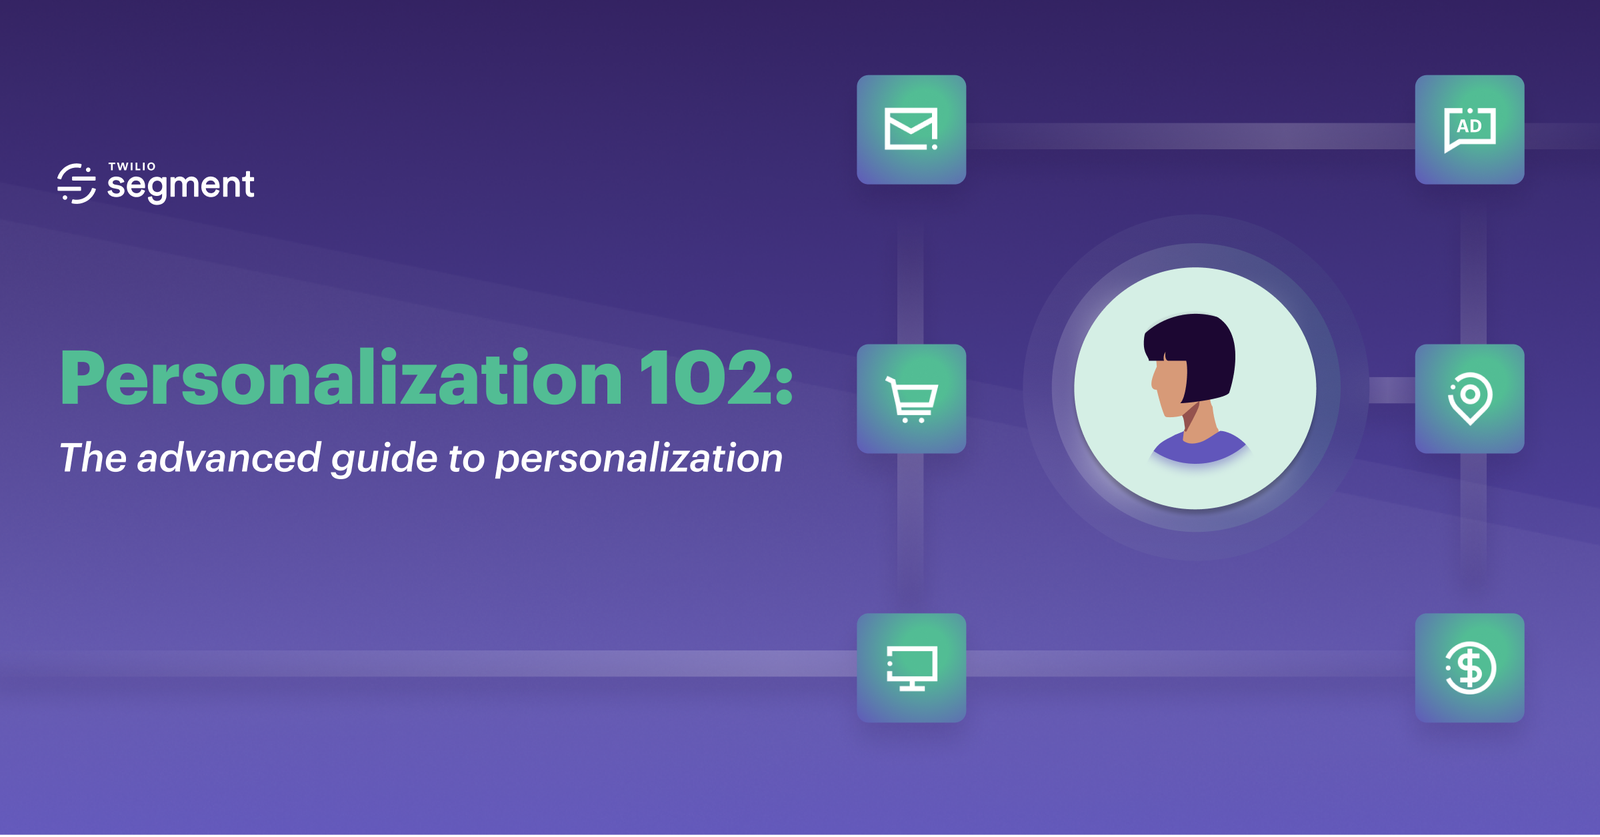 Personalization 102: The Advanced Guide to Personalization